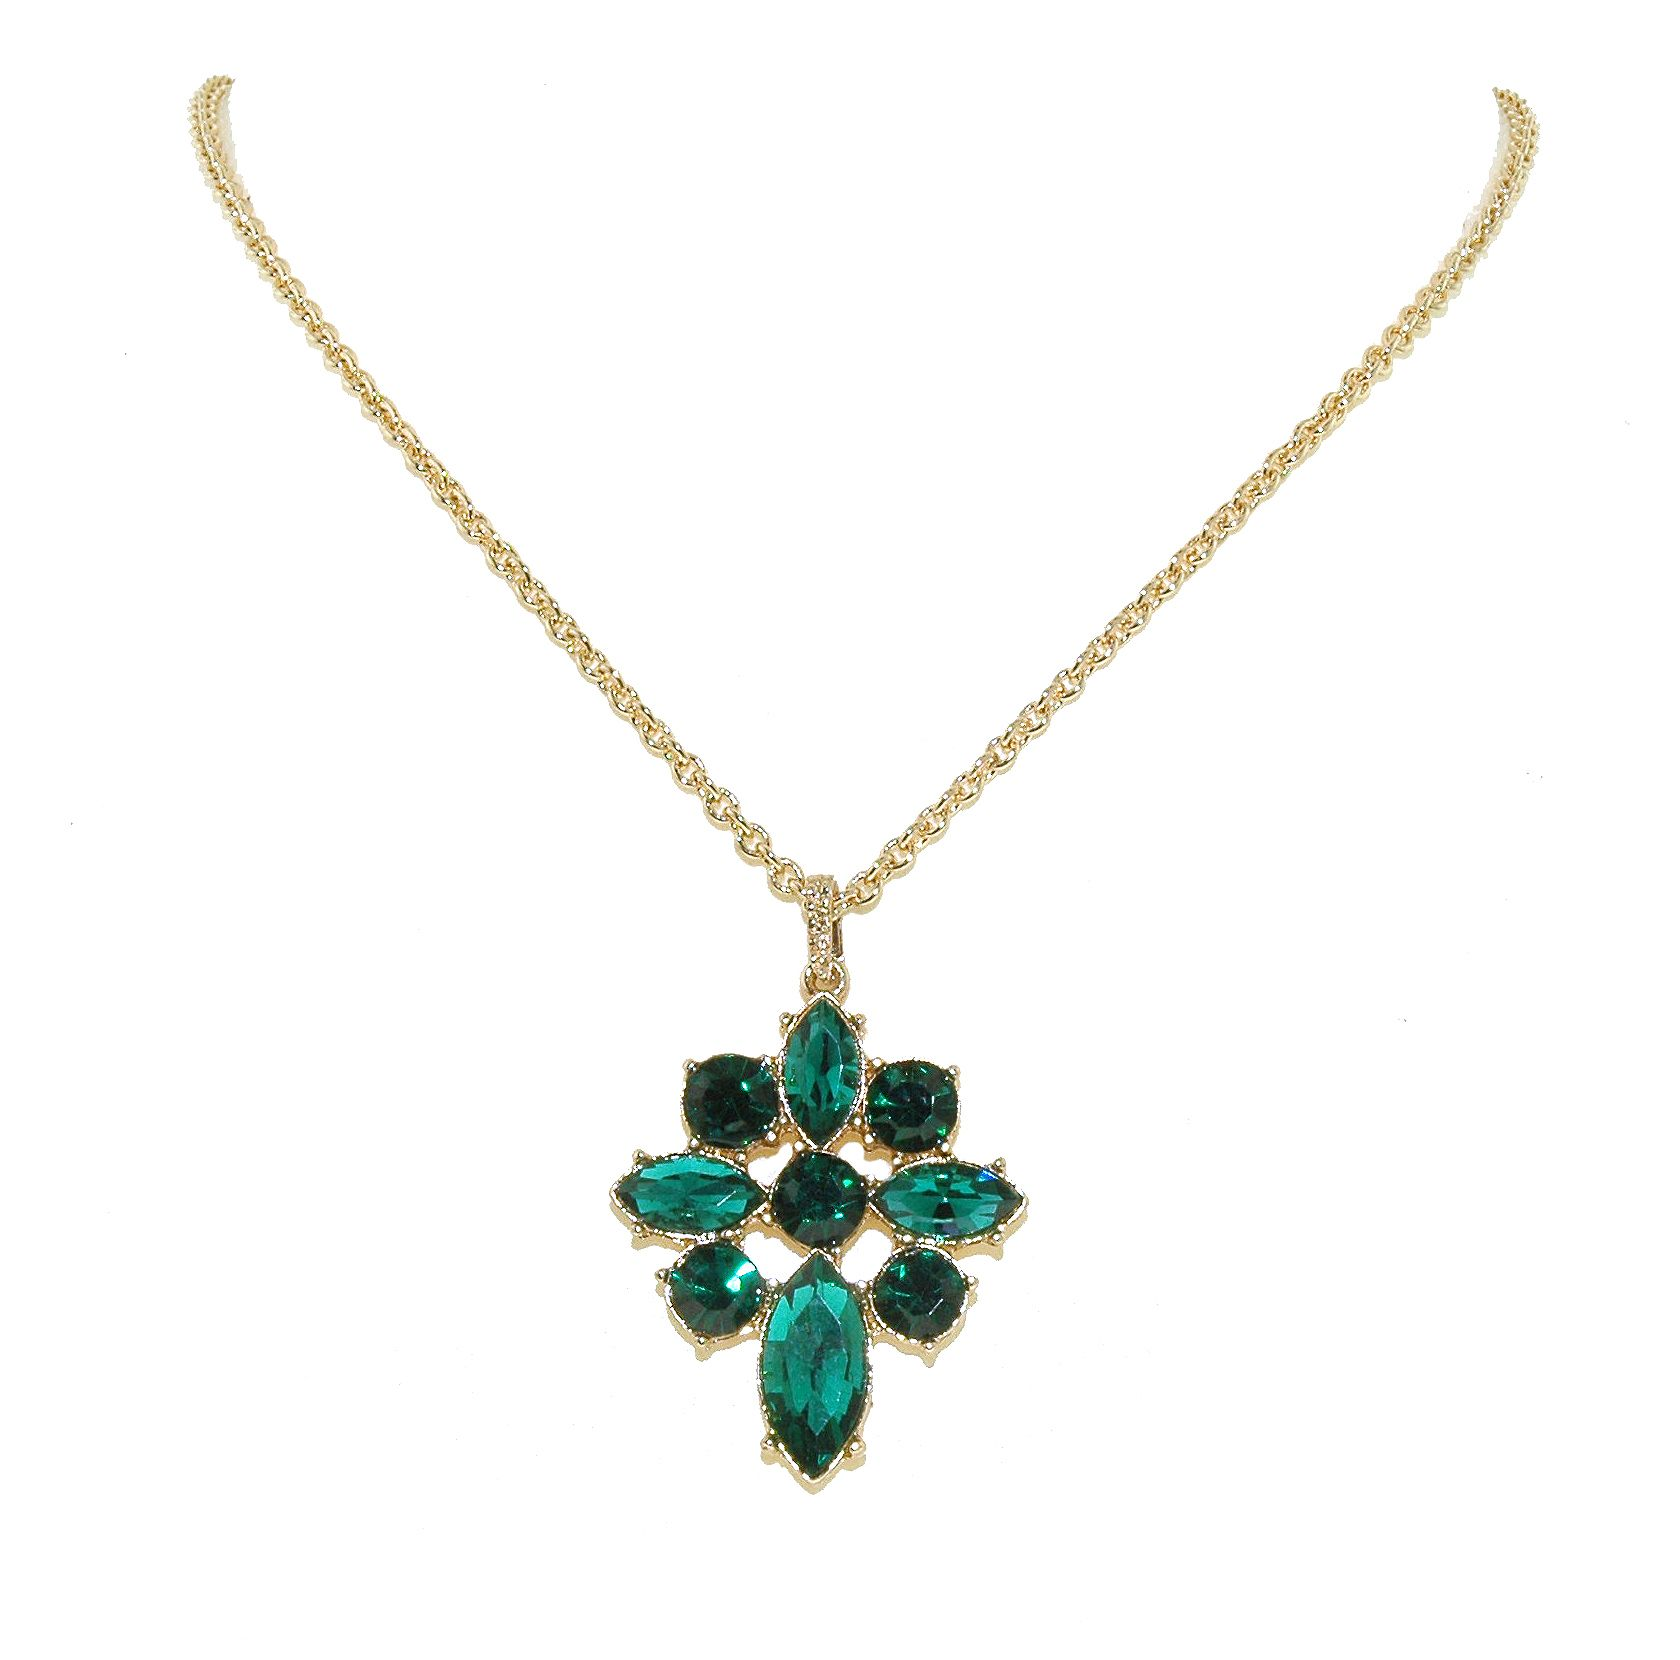 Gold & emerald pendant